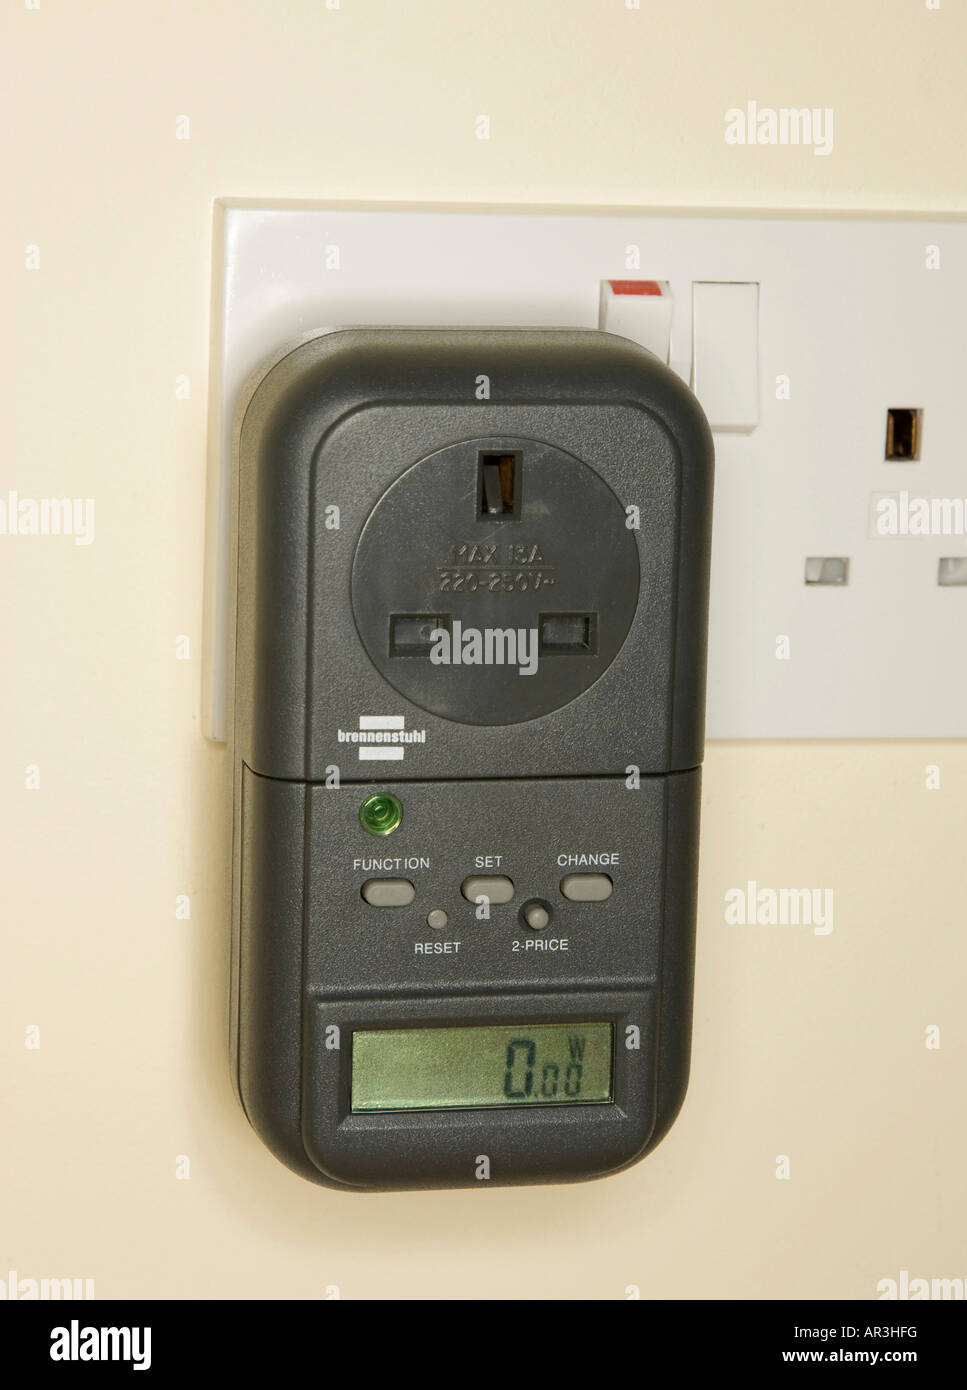 digital energy meter in wall socket to measure electricity consumed by a plugged in appliance - Stock Image